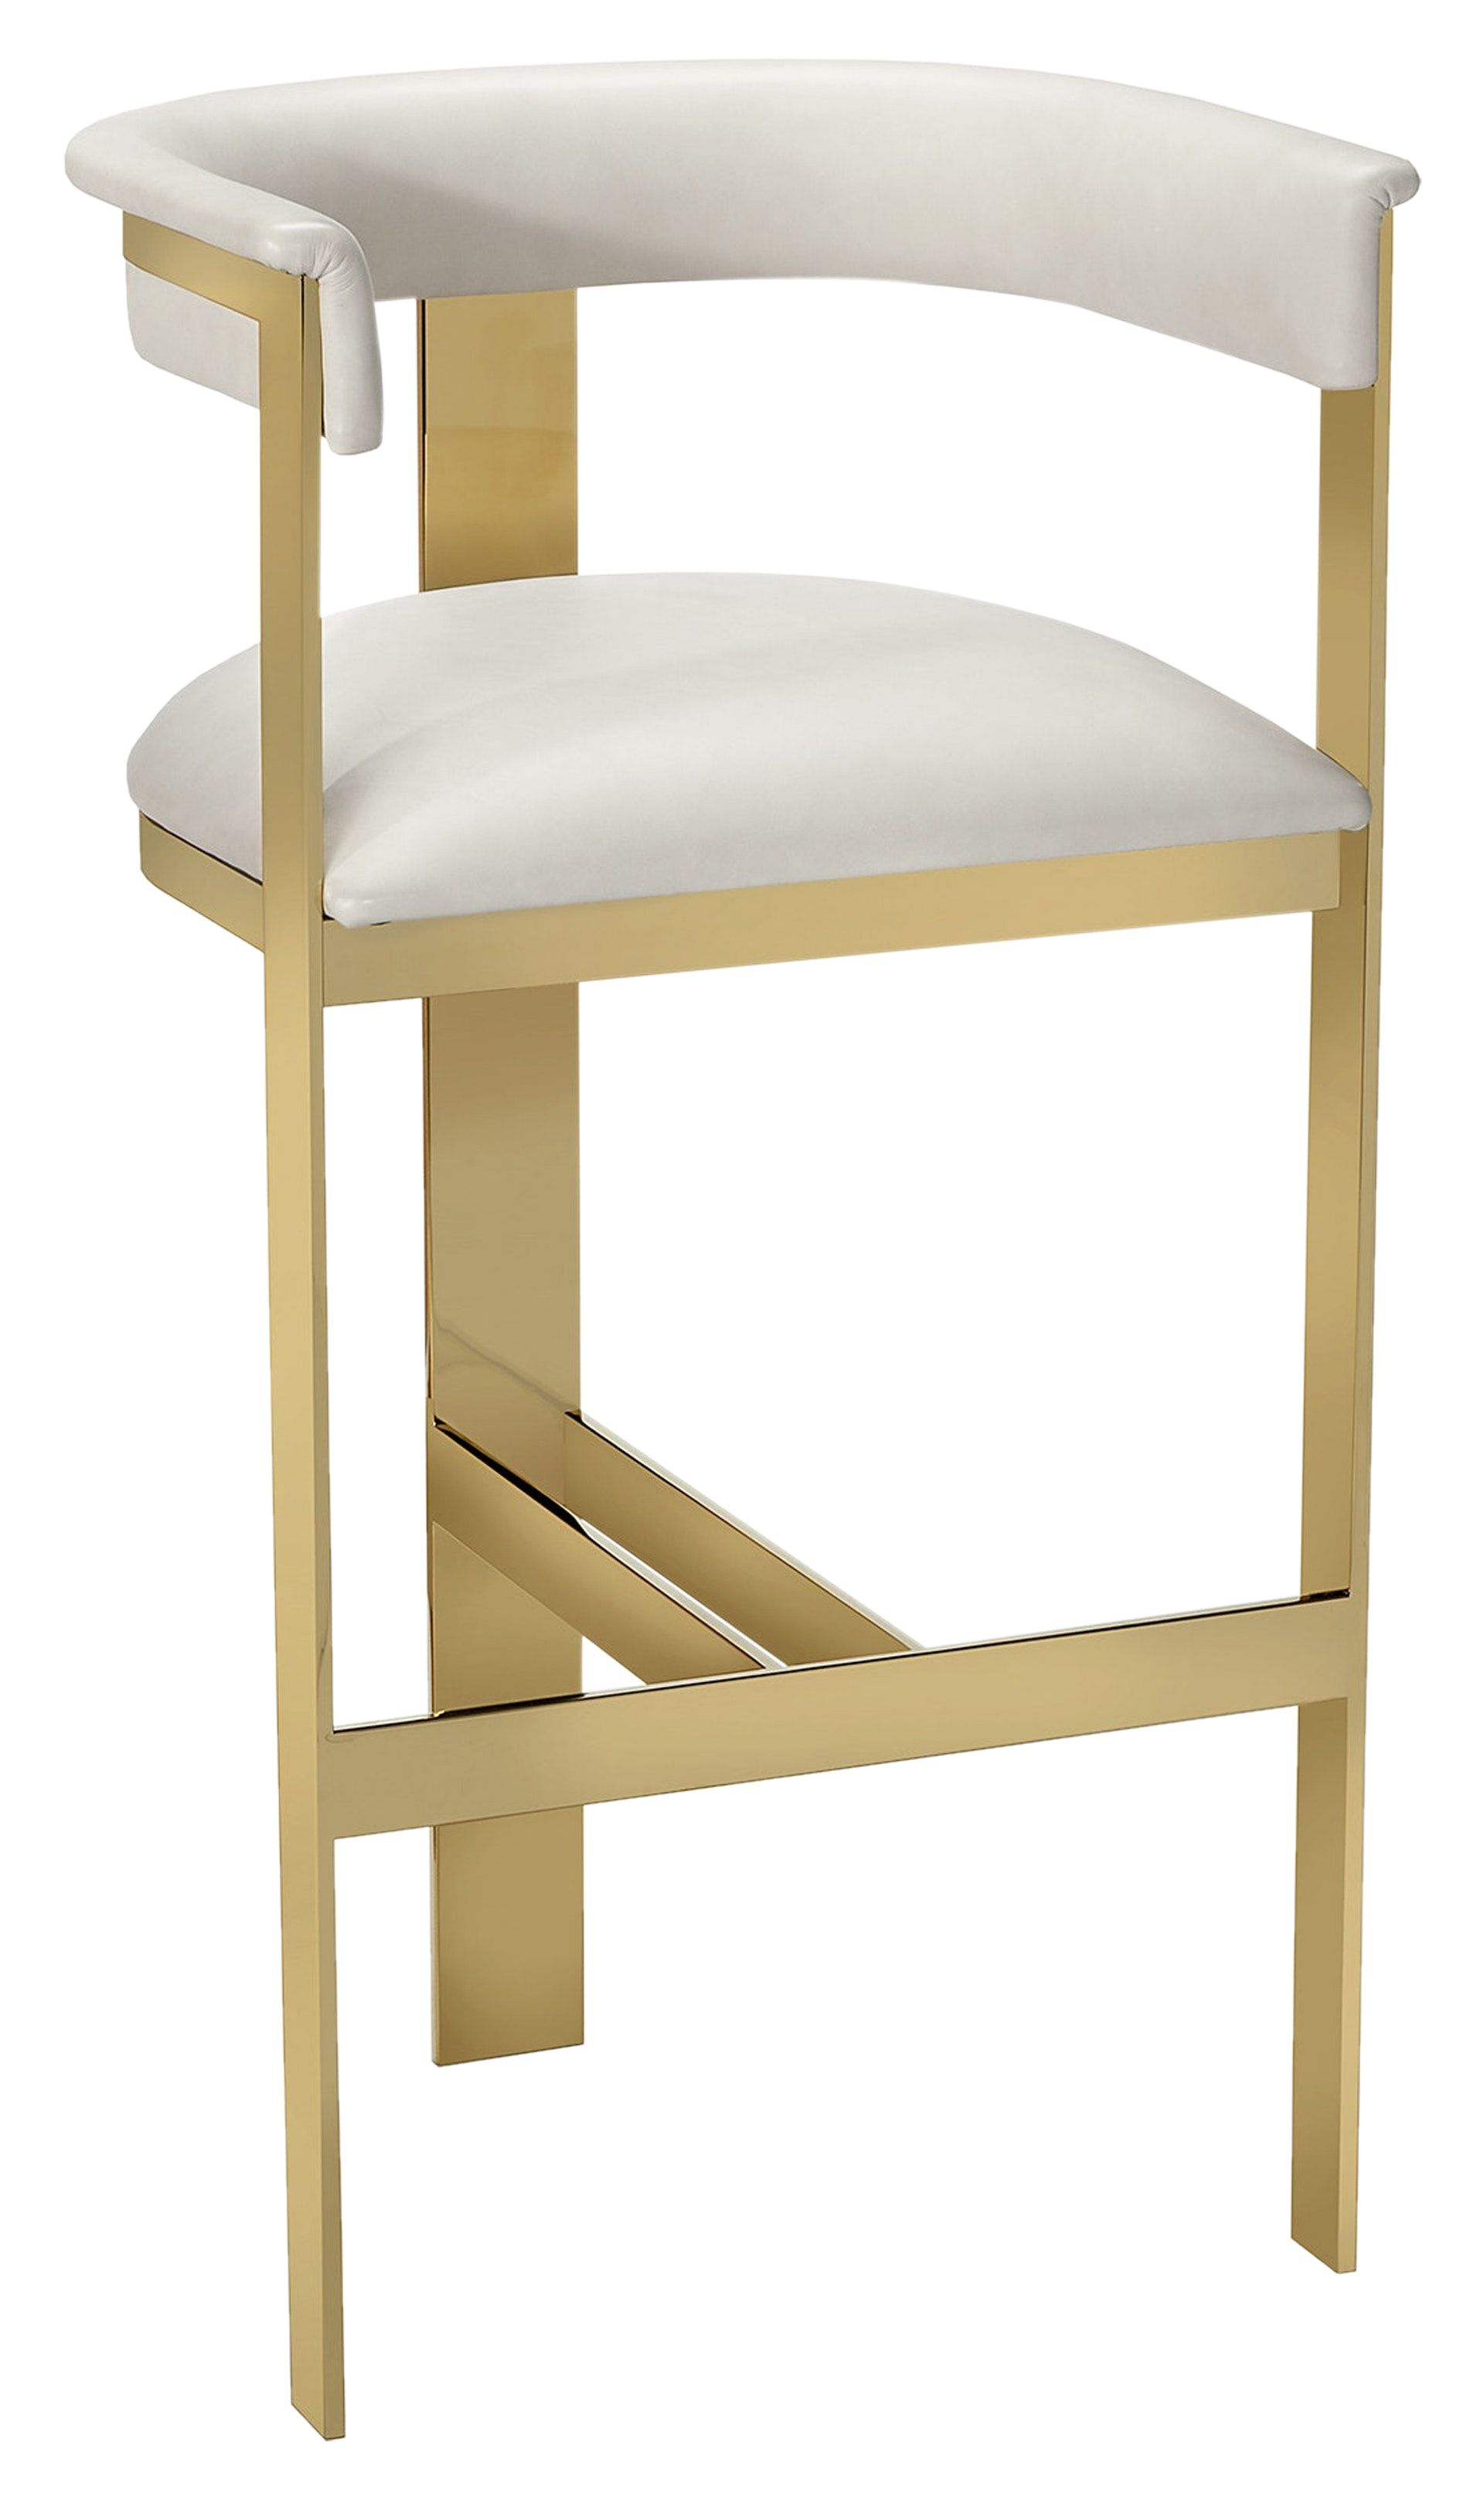 Darcy Bar Stool  Cream  Contemporary Transitional Mid Century Modern